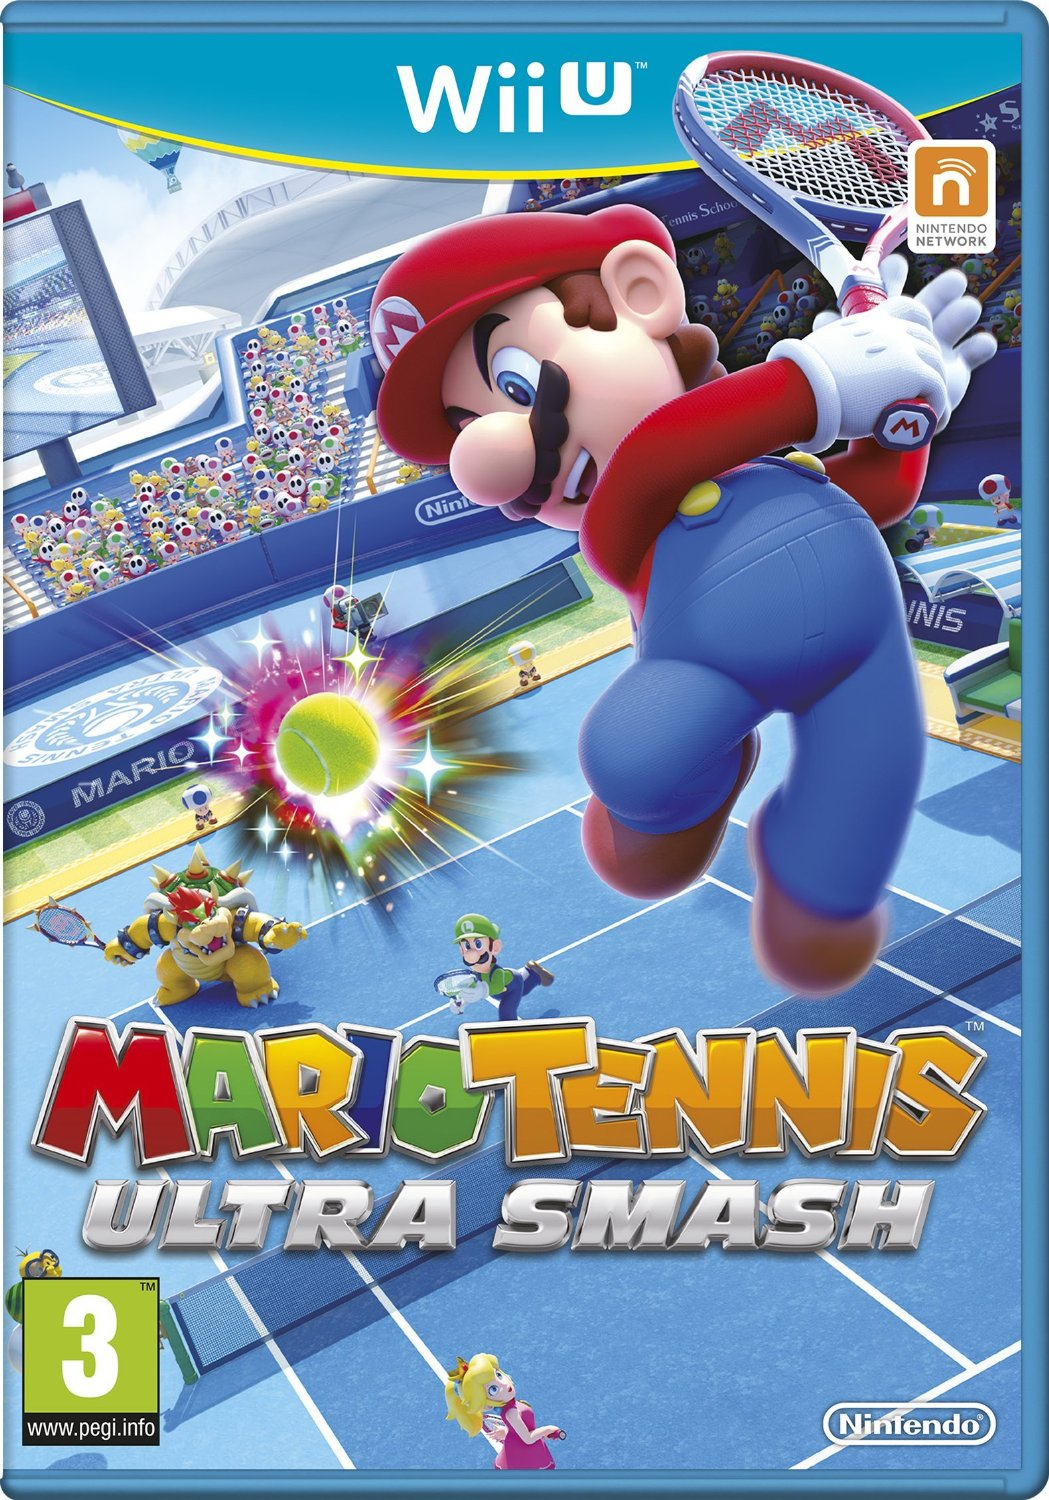 mario tennis ultra smash sur wii u. Black Bedroom Furniture Sets. Home Design Ideas